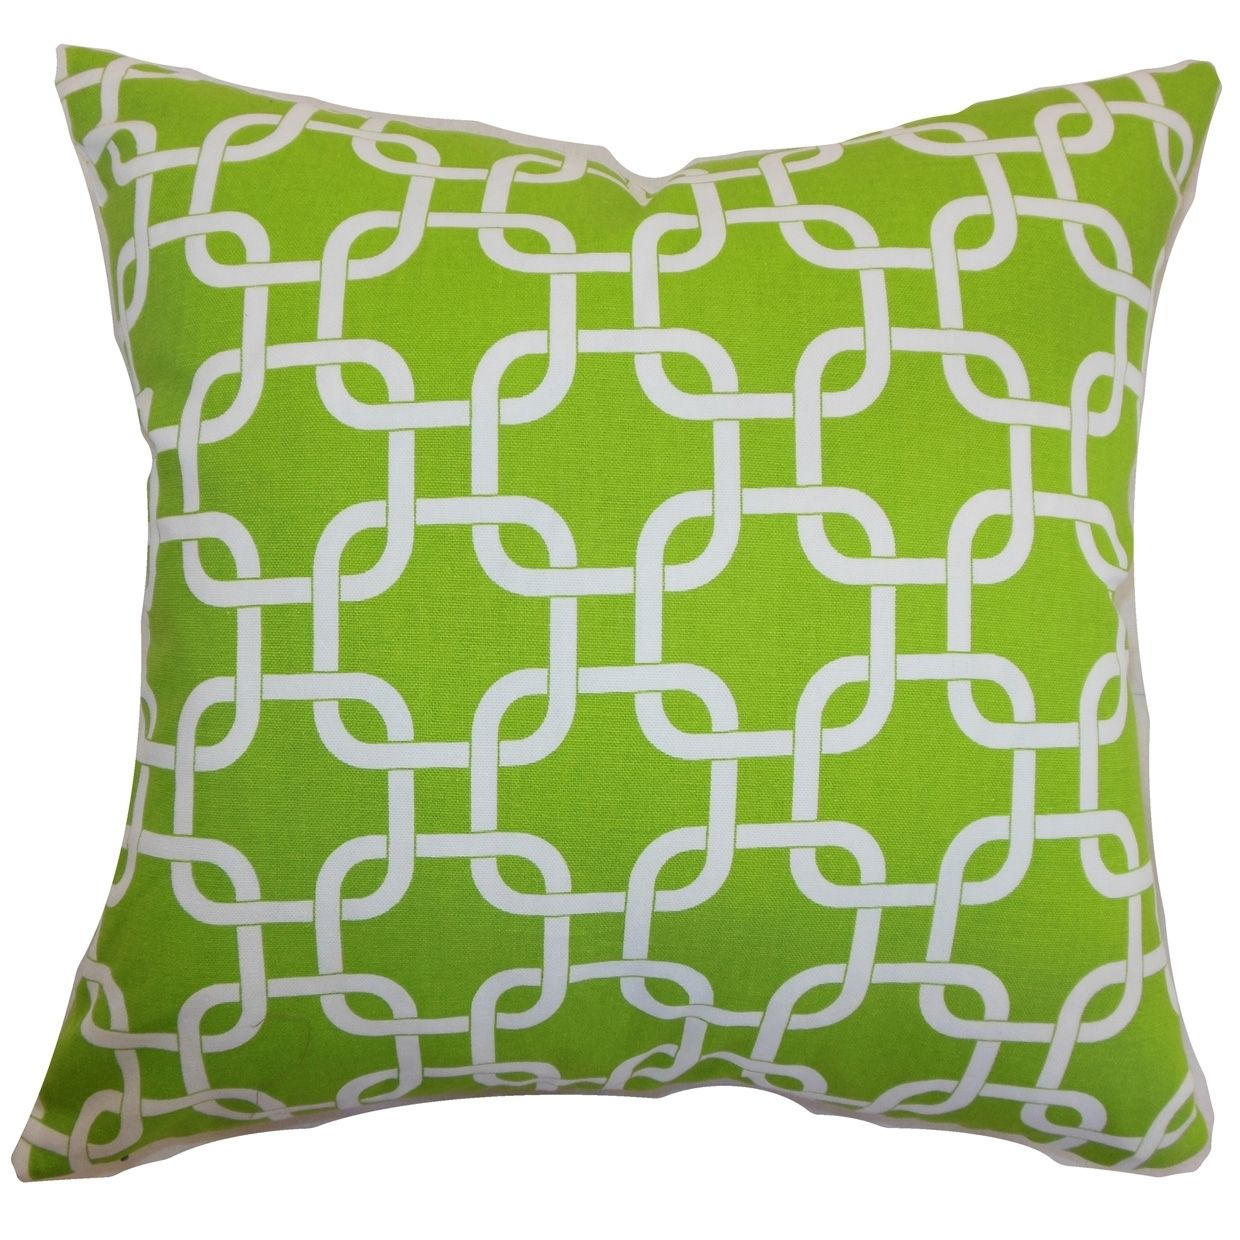 Qishn geometric chartreuse feather filled throw pillow inches x